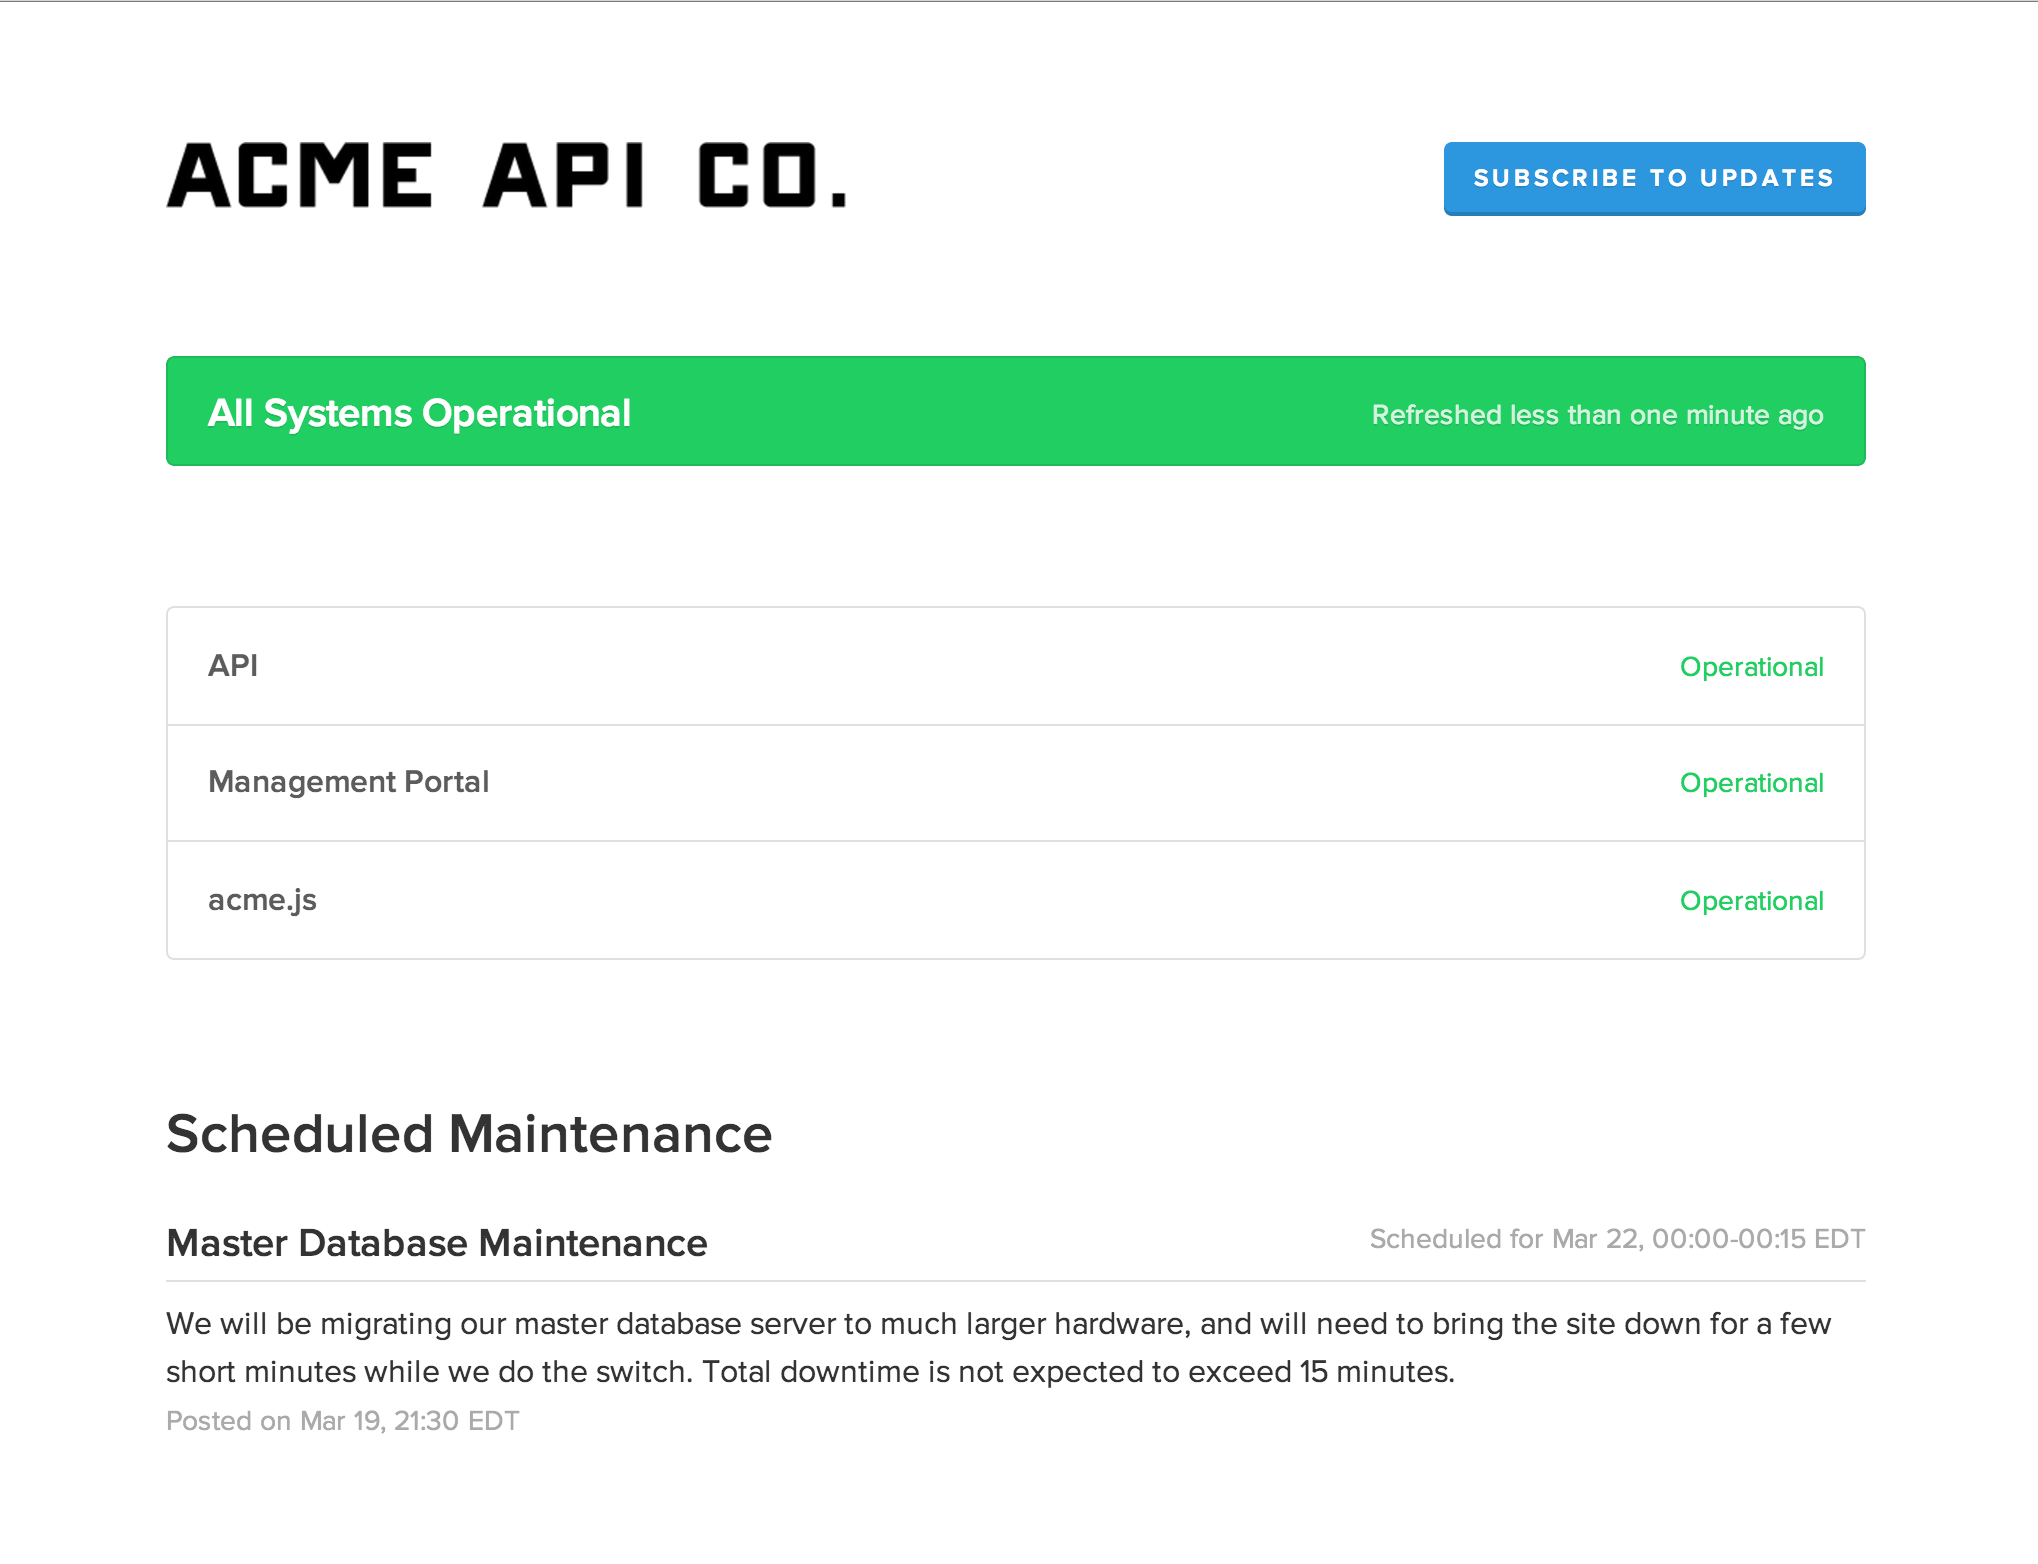 Scheduled Maintenance | StatusPage.io